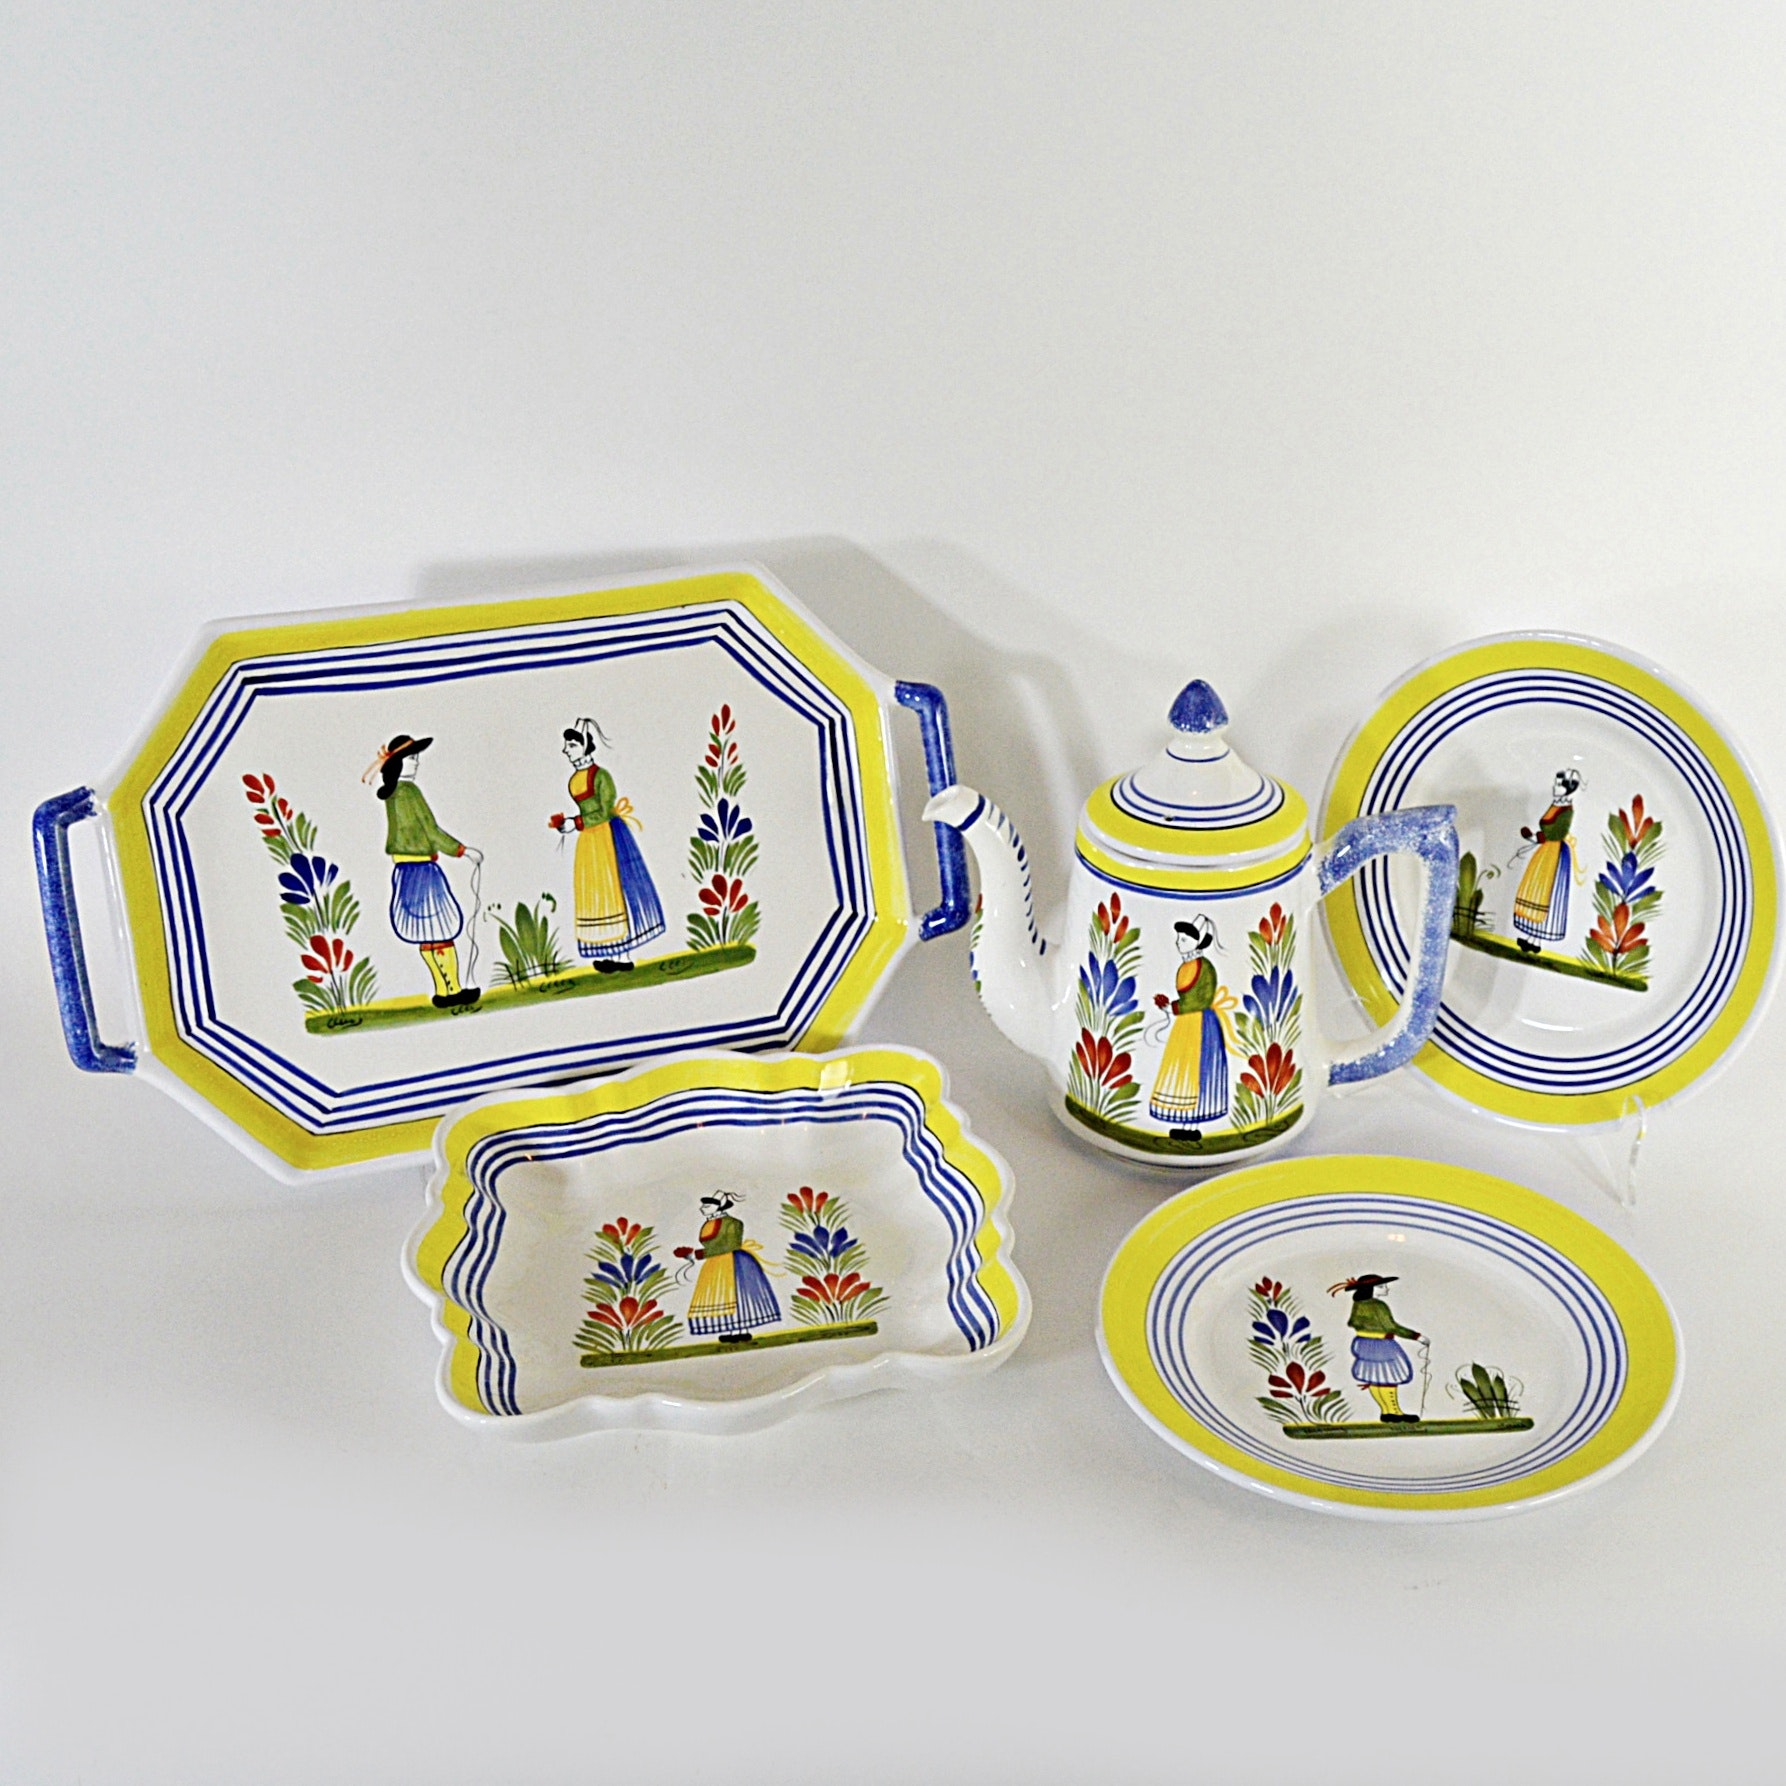 Collection of Henriot Quimper Hand-Painted French Tableware